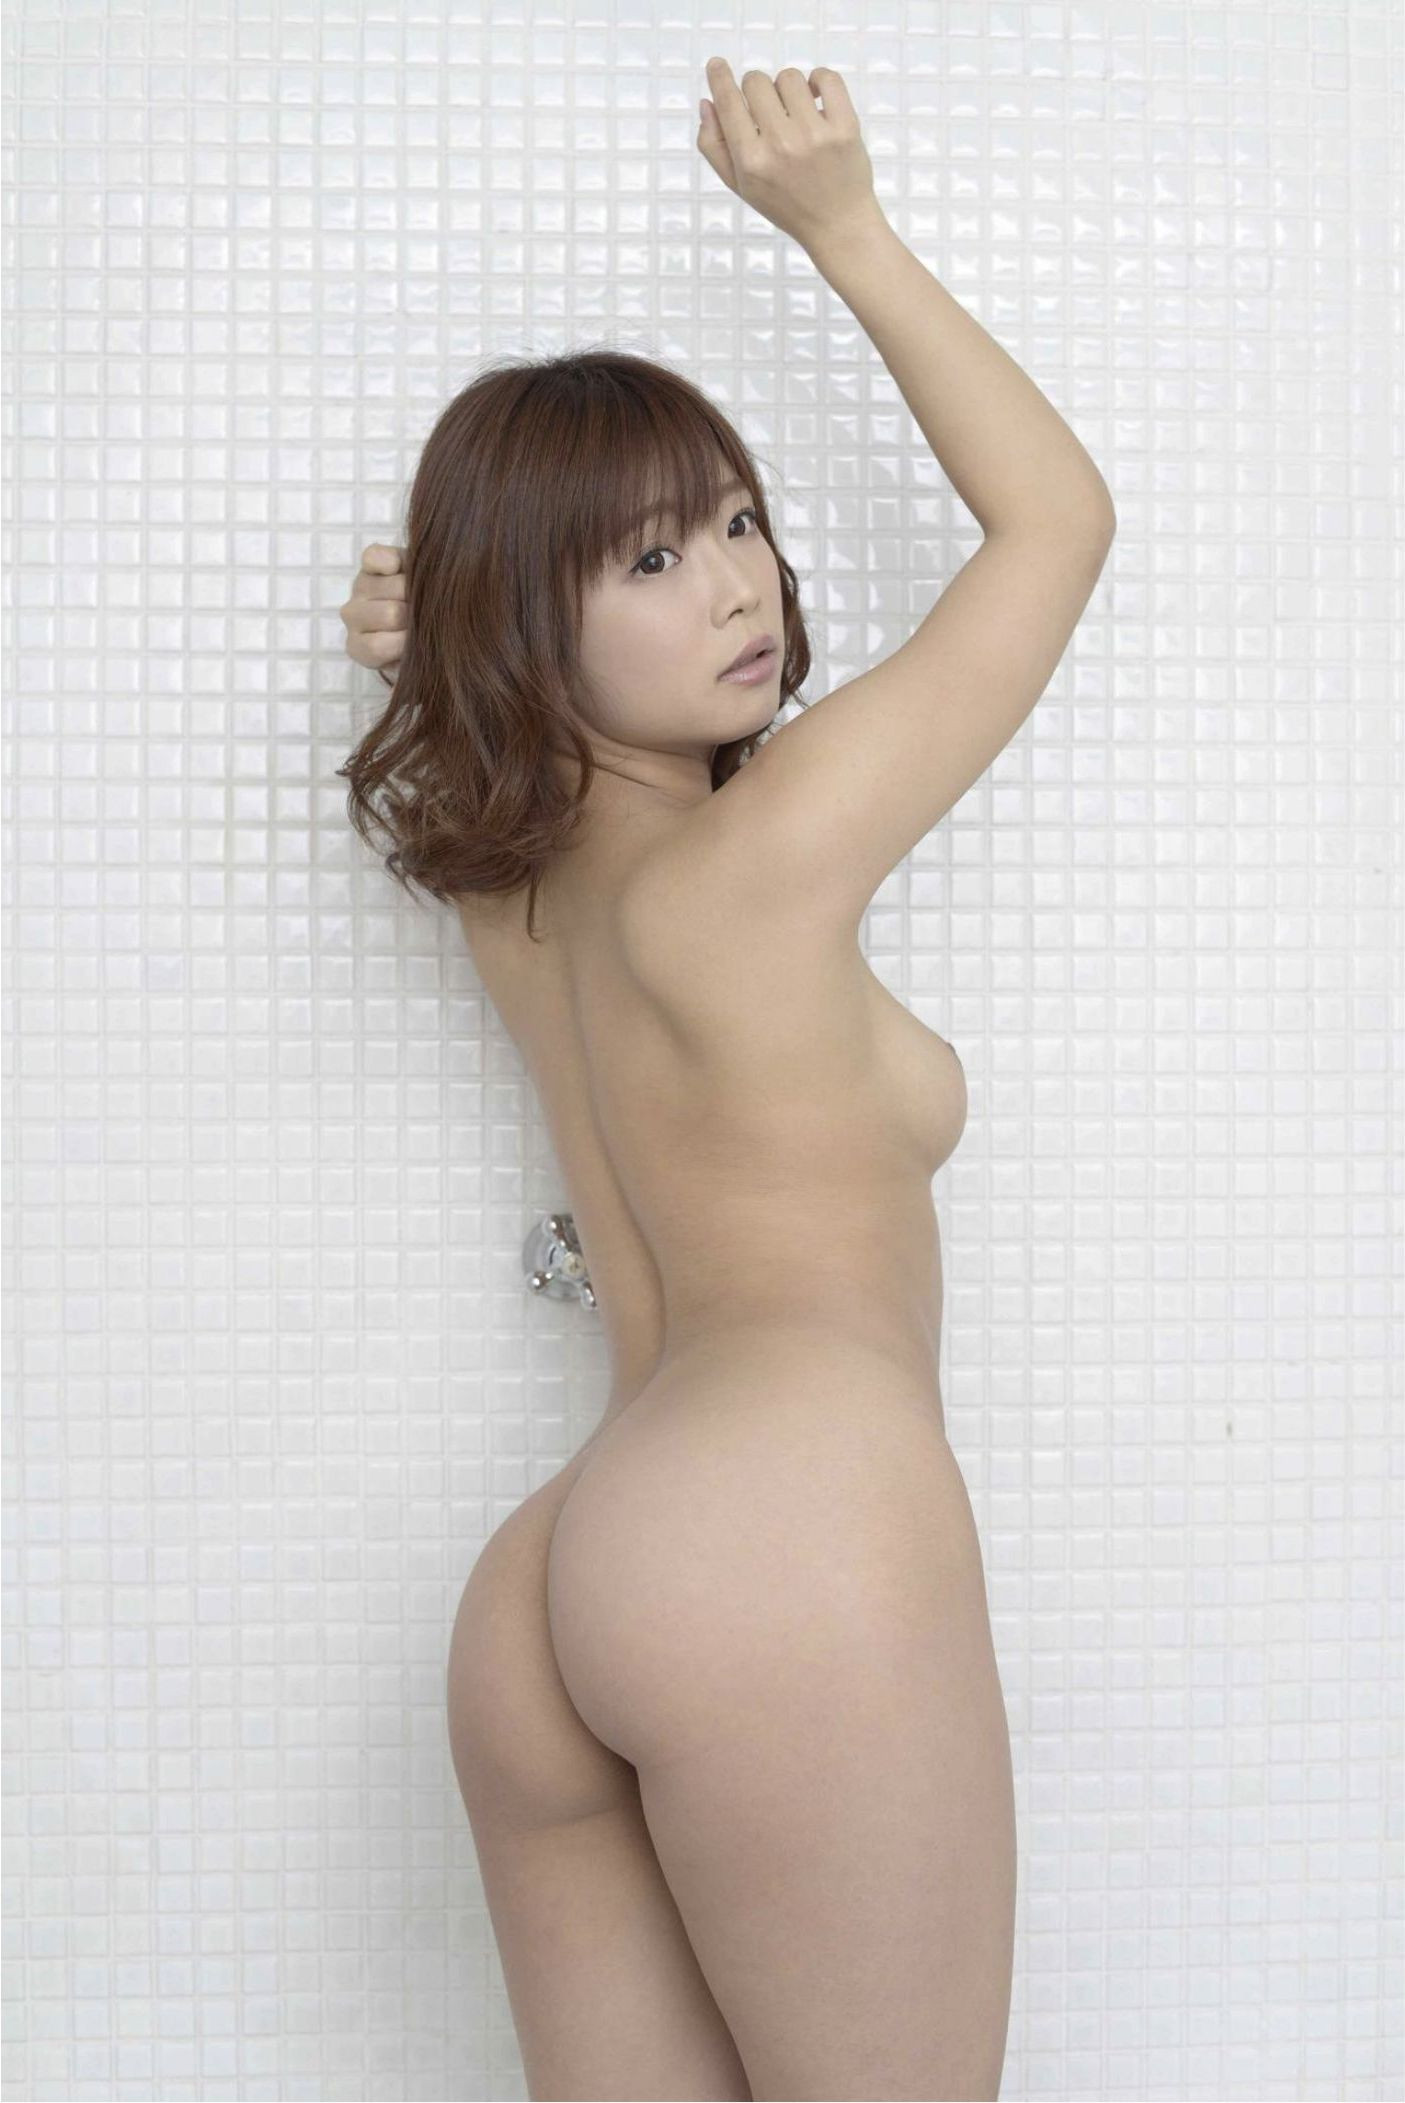 SOFT ON DEMAND GRAVURE COLLECTION 紗倉まな02 photo 054